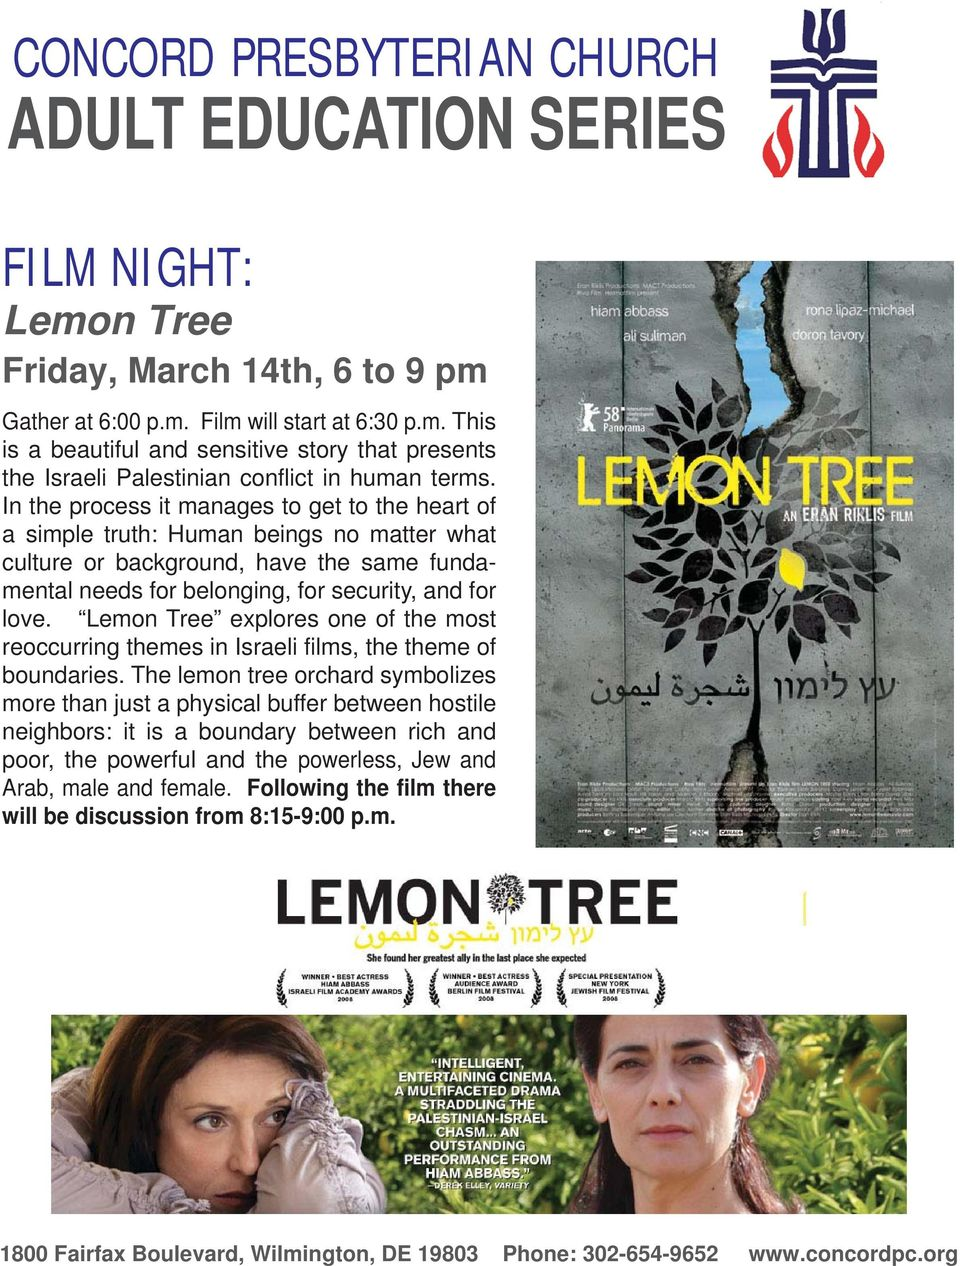 love. Lemon Tree explores one of the most reoccurring themes in Israeli films, the theme of boundaries.